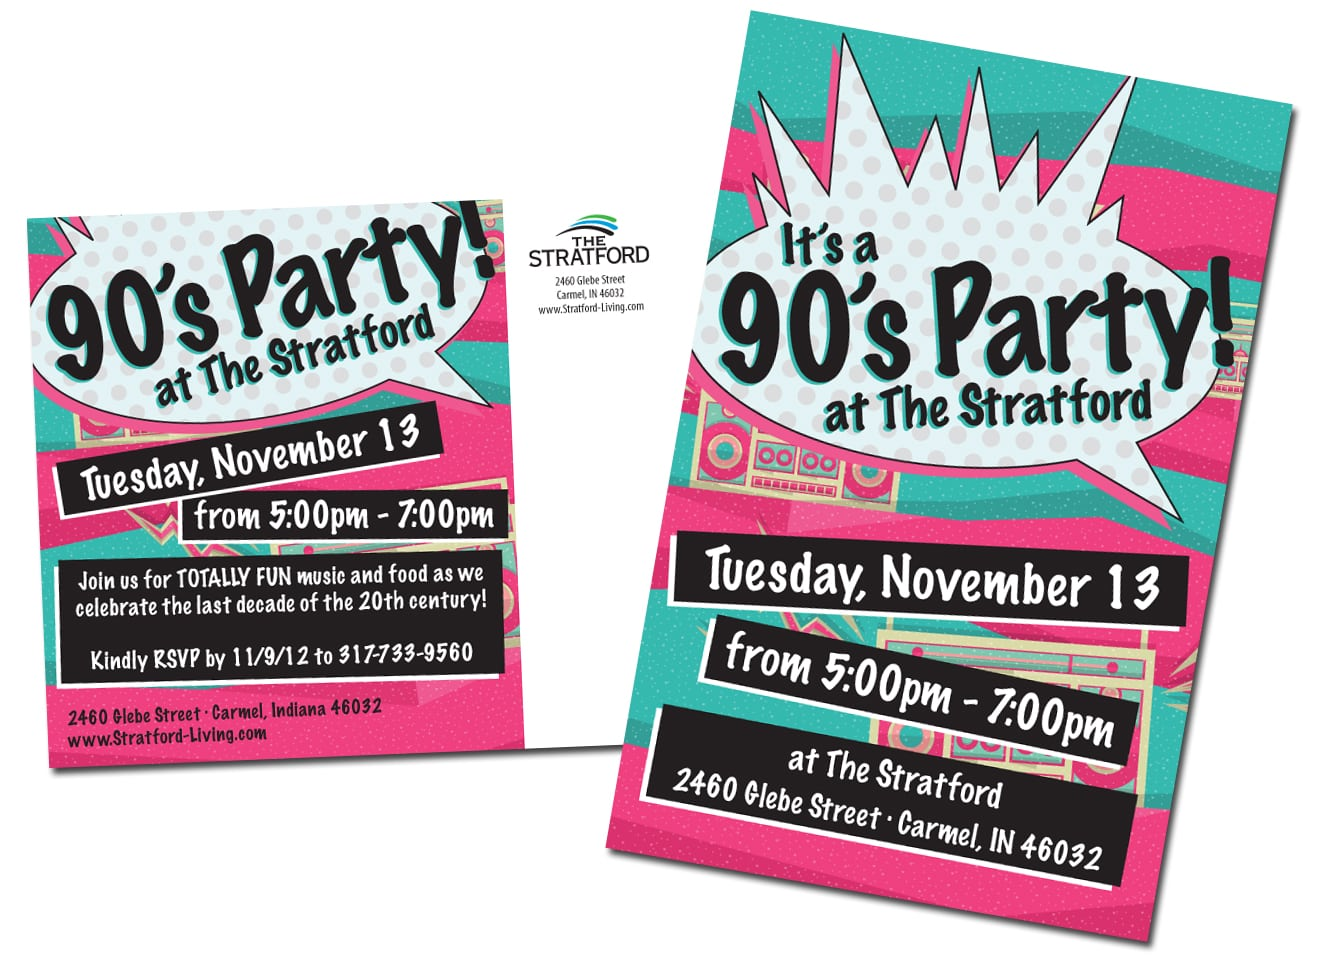 17 Best Images About 90's Party On Pinterest